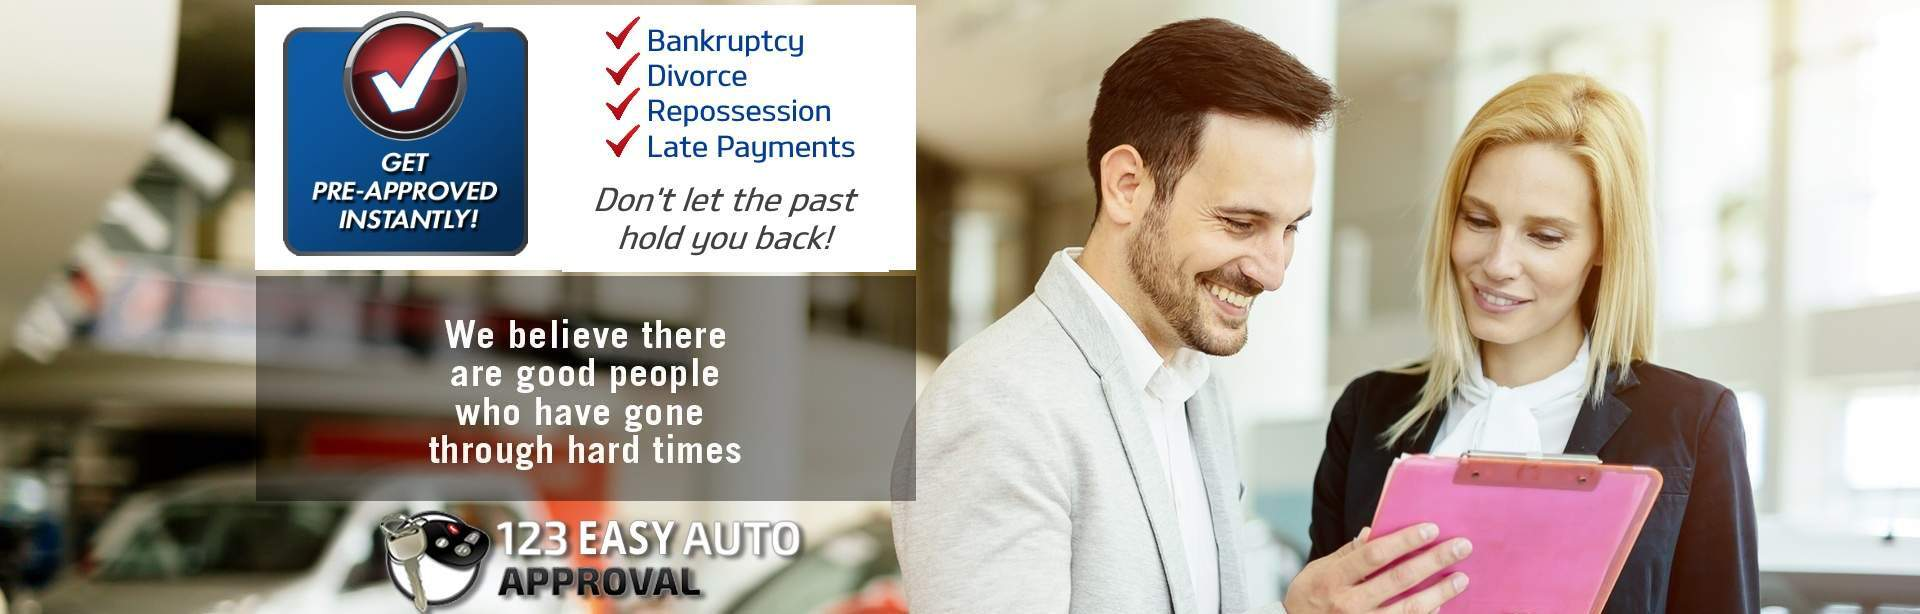 123 Easy Auto Approval